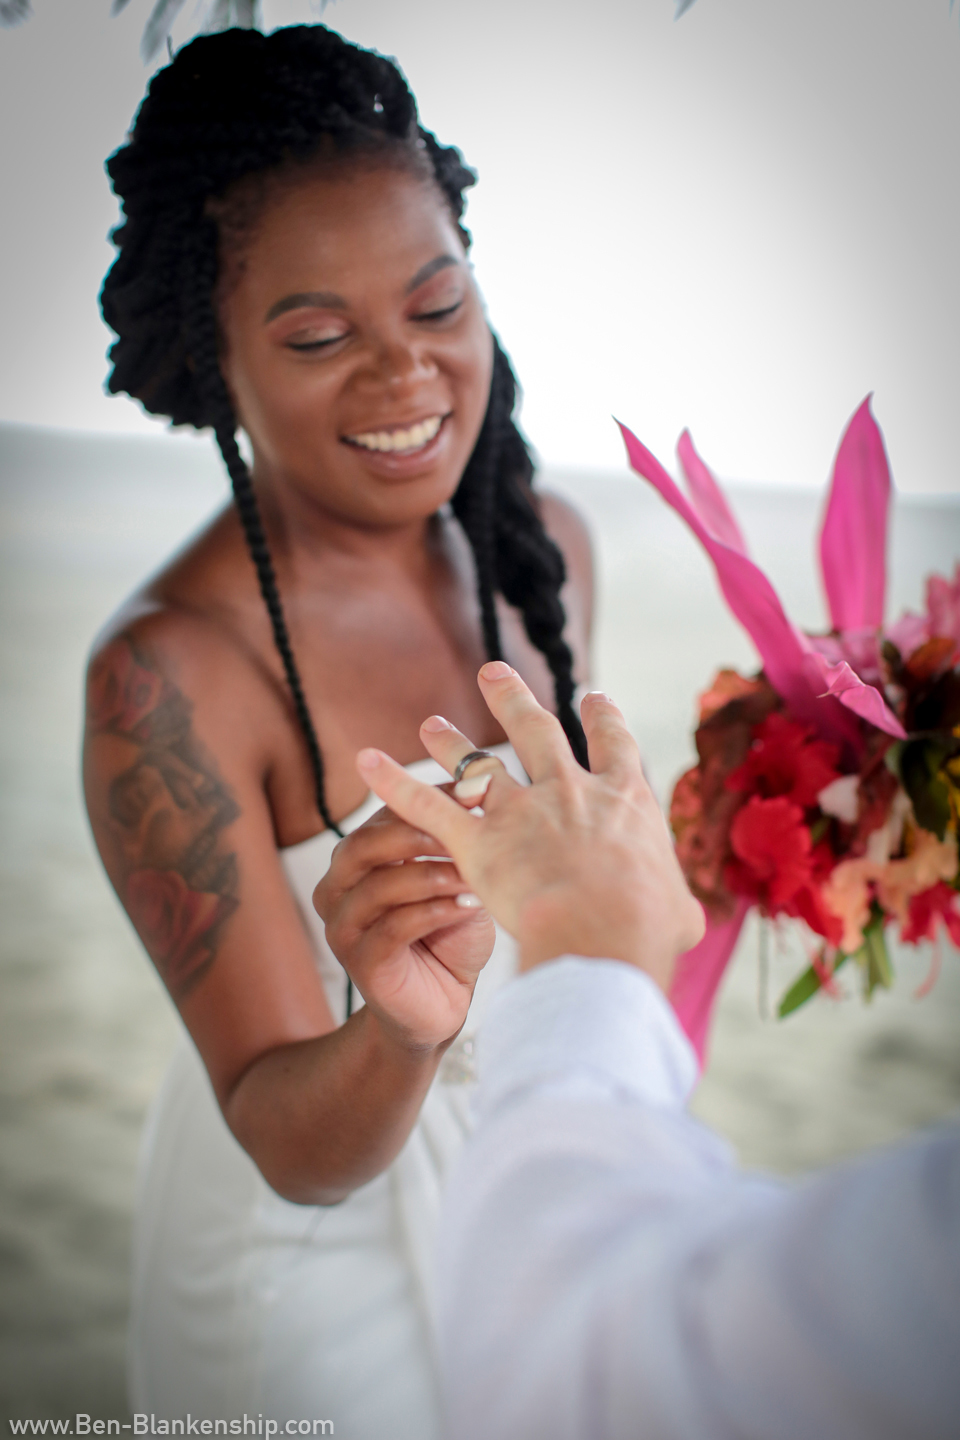 Sherri places Jory's wedding band on his hand. Taken in Carate, Costa Rica. June 2018.